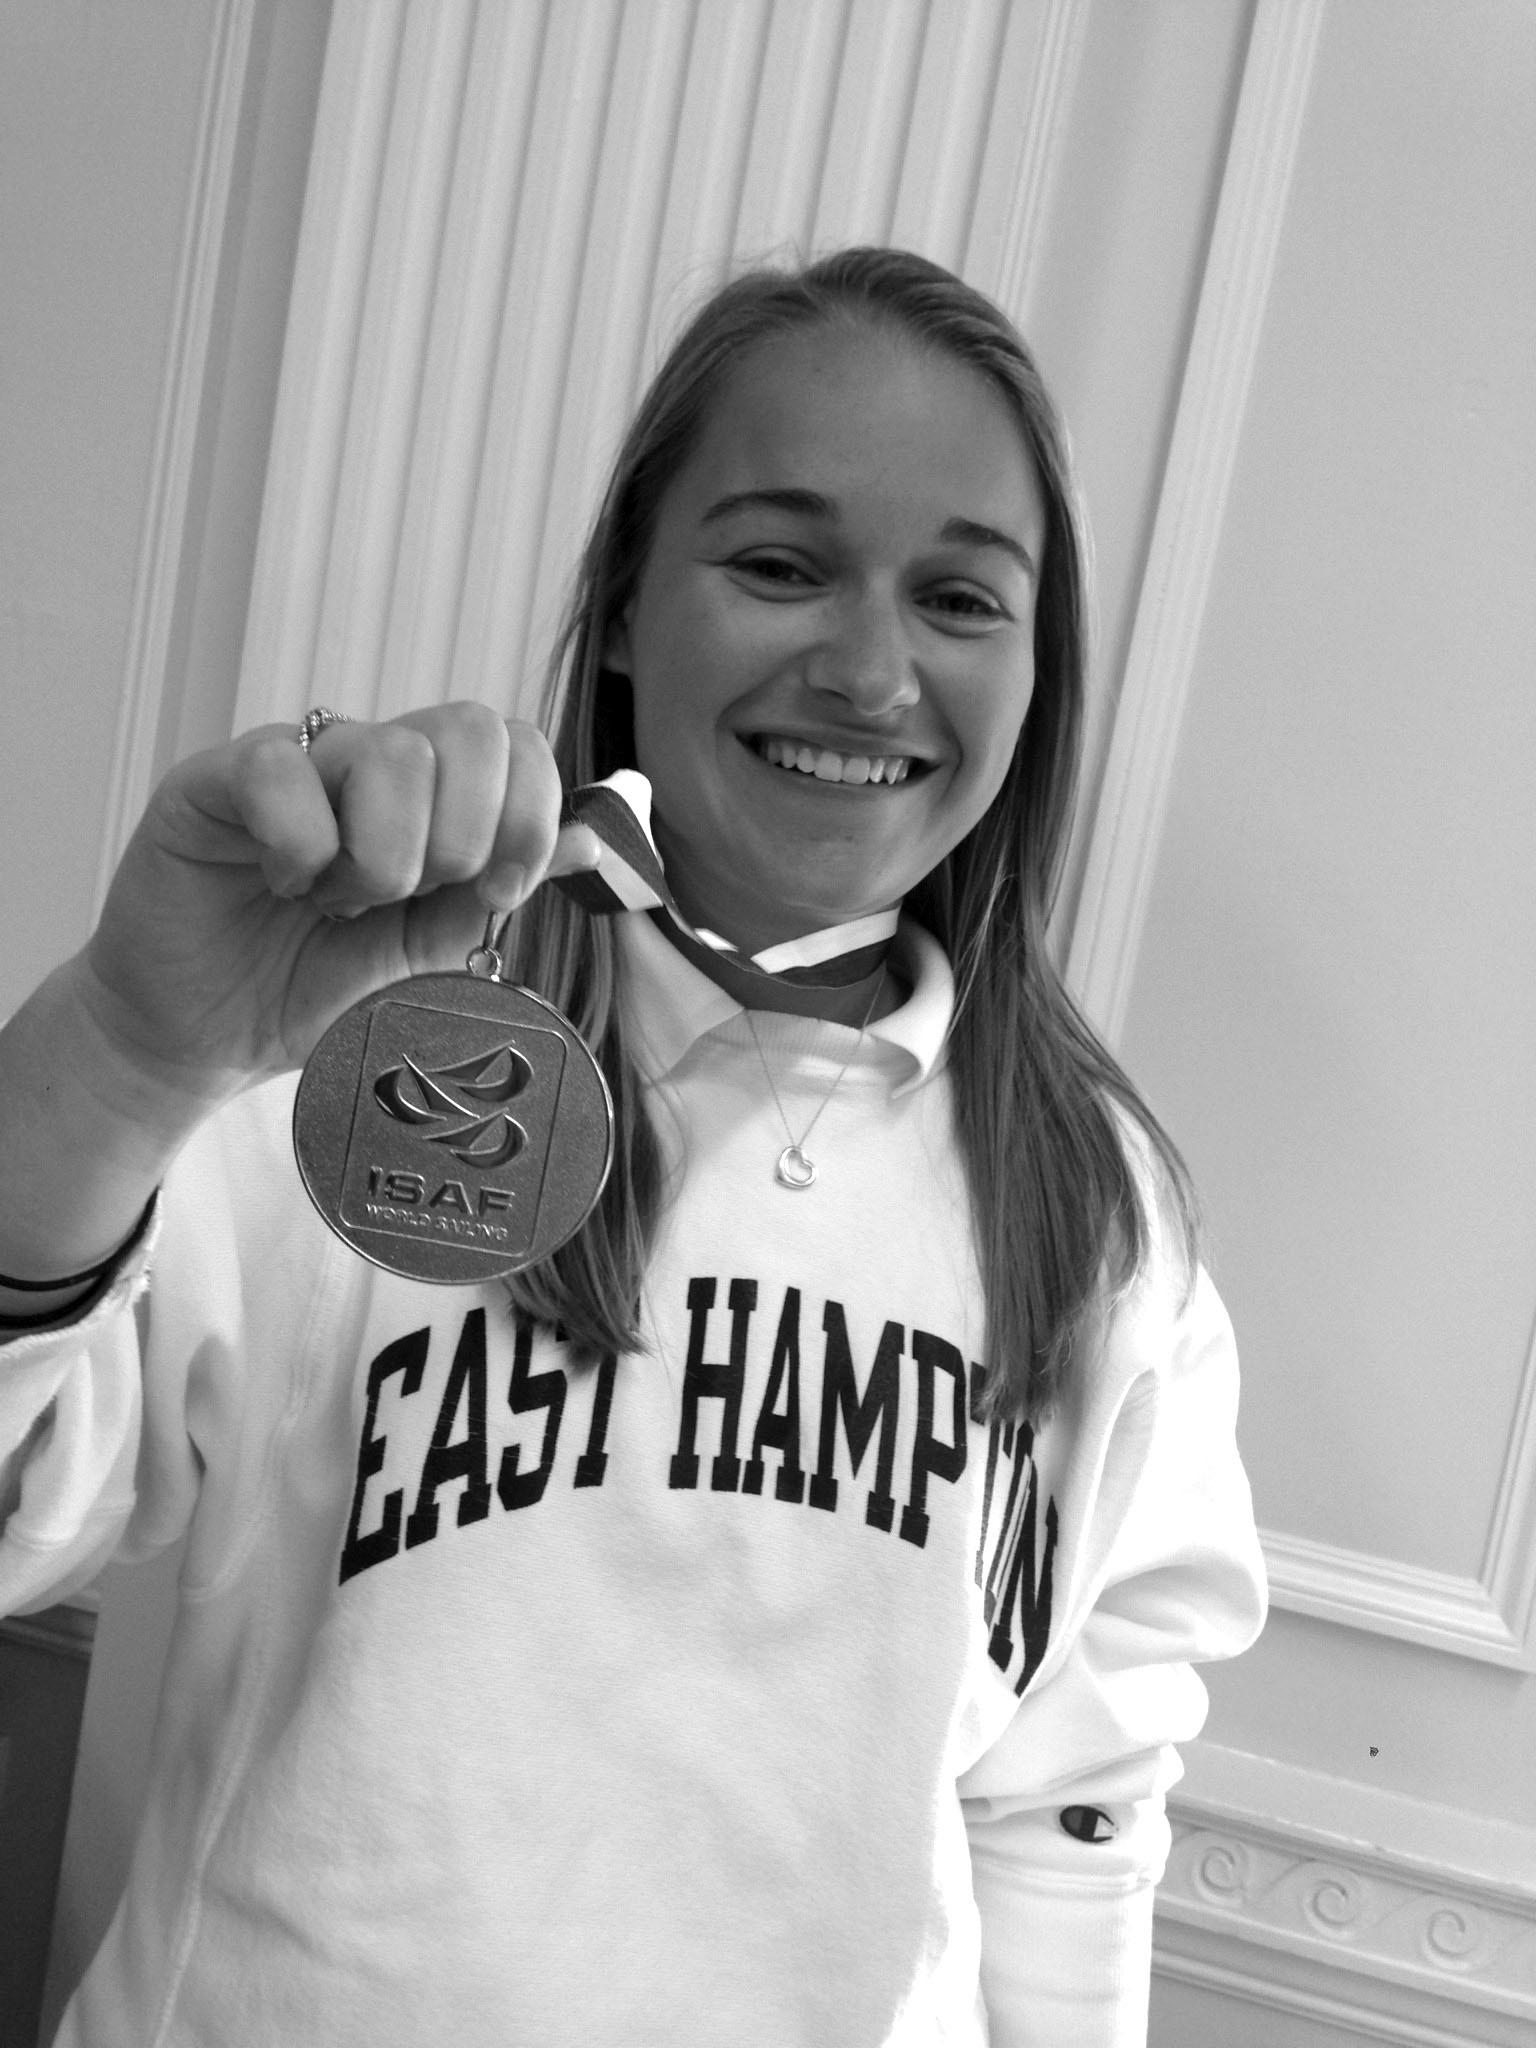 Senior Paige Dunlevy shows off her gold-medal from the International Sailing Federation Team-Racing World Championships. Dunlevy acted as replacement for a team member who was not eligible to compete.